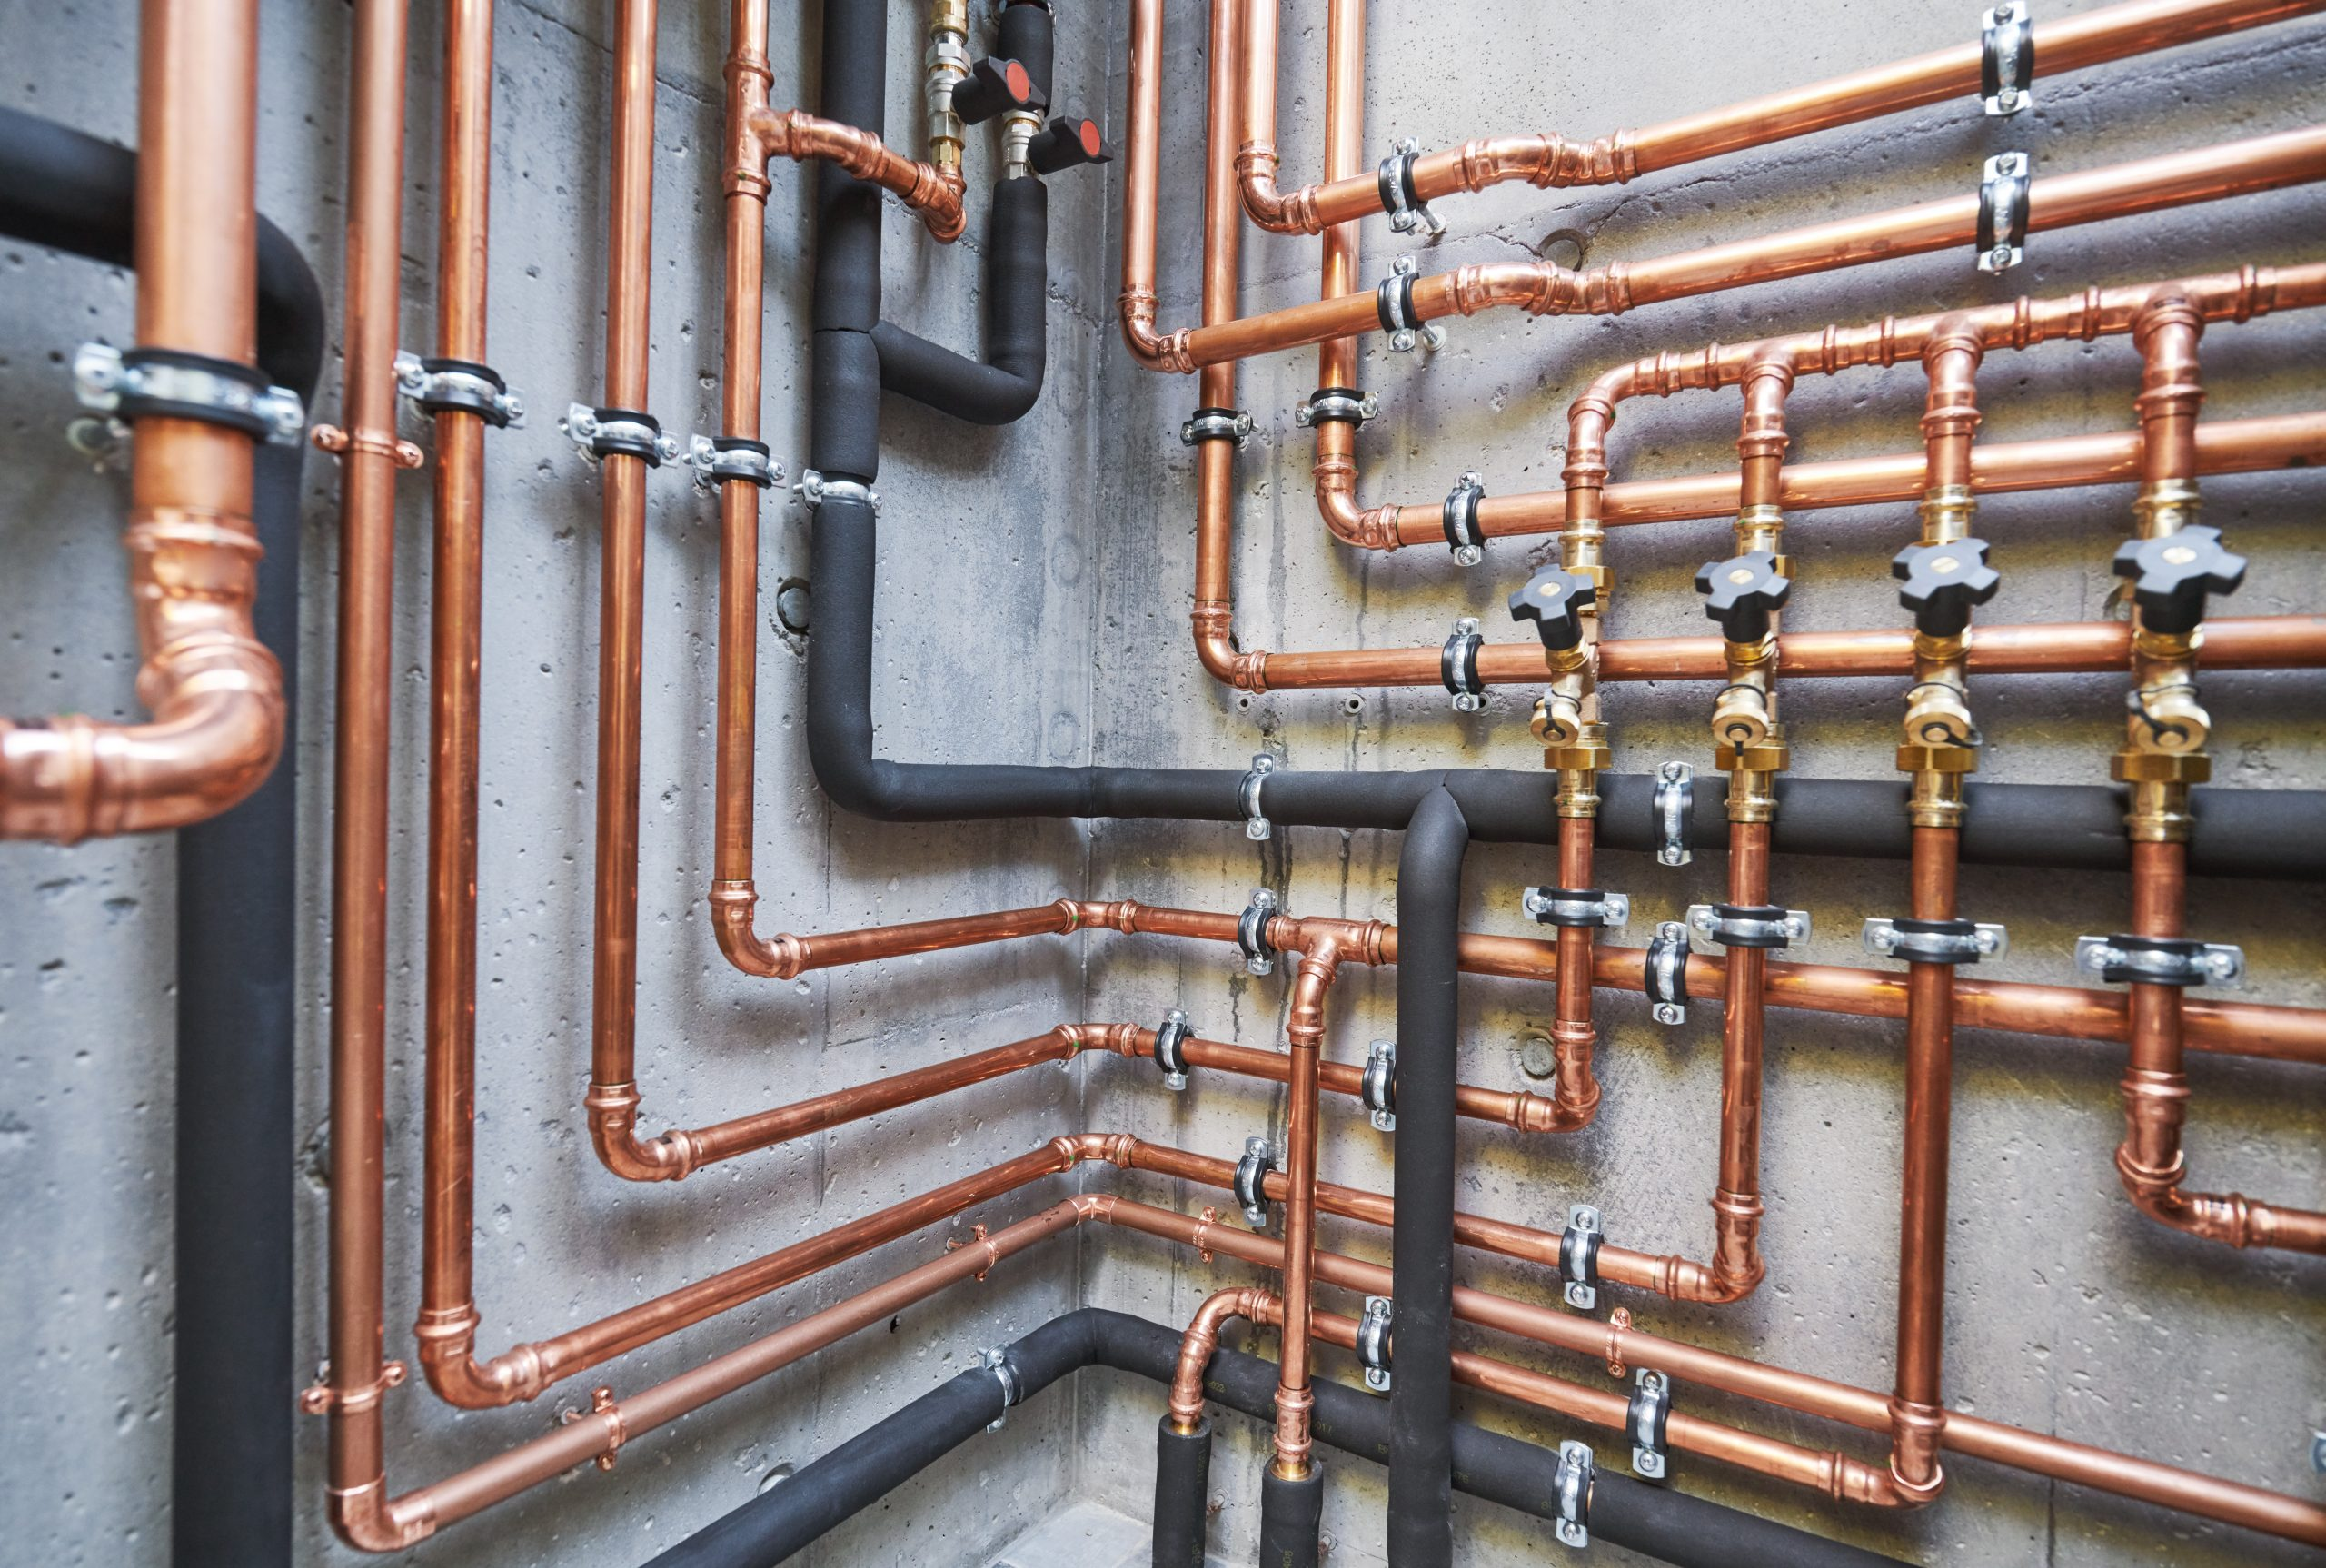 Plumbing,Service.,Copper,Pipeline,Of,A,Heating,System,In,Boiler